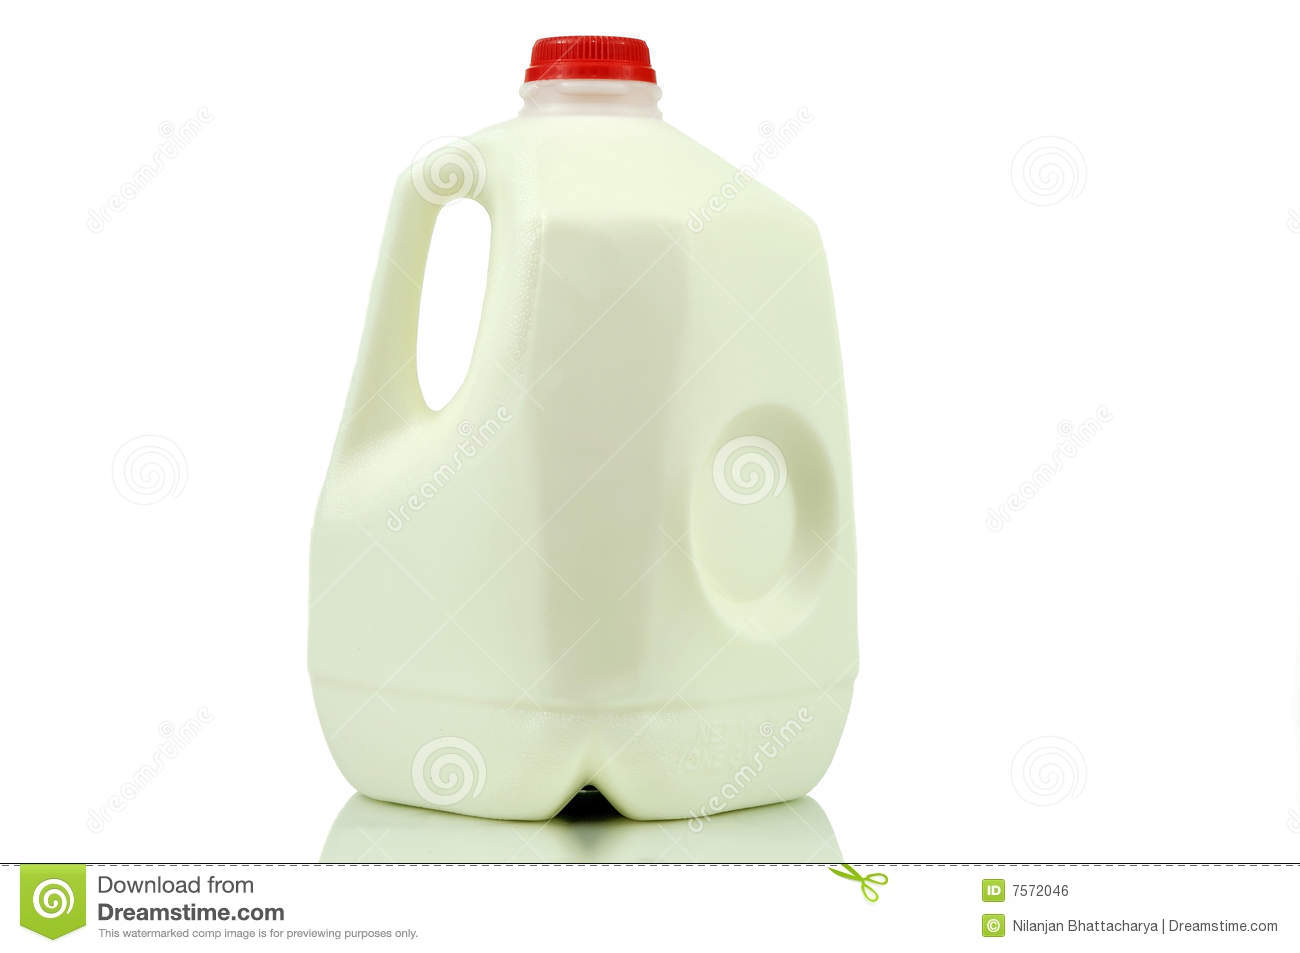 One gallon of milk container isolated on white with clipping path.